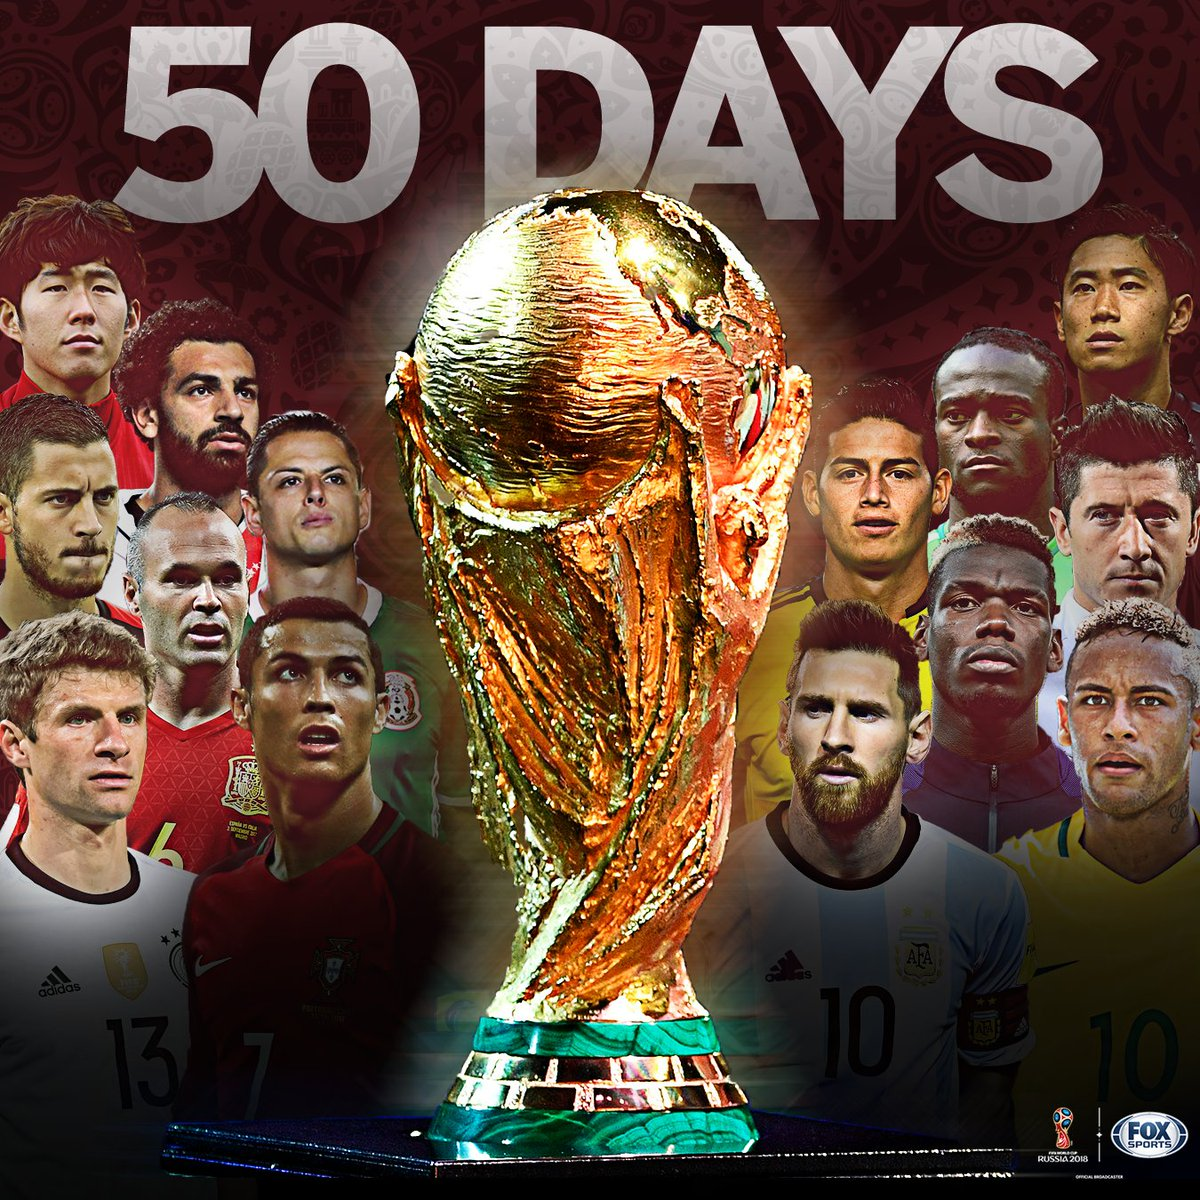 The 2018 FIFA World Cup is ONLY 5️⃣0️⃣ DAYS AWAY!